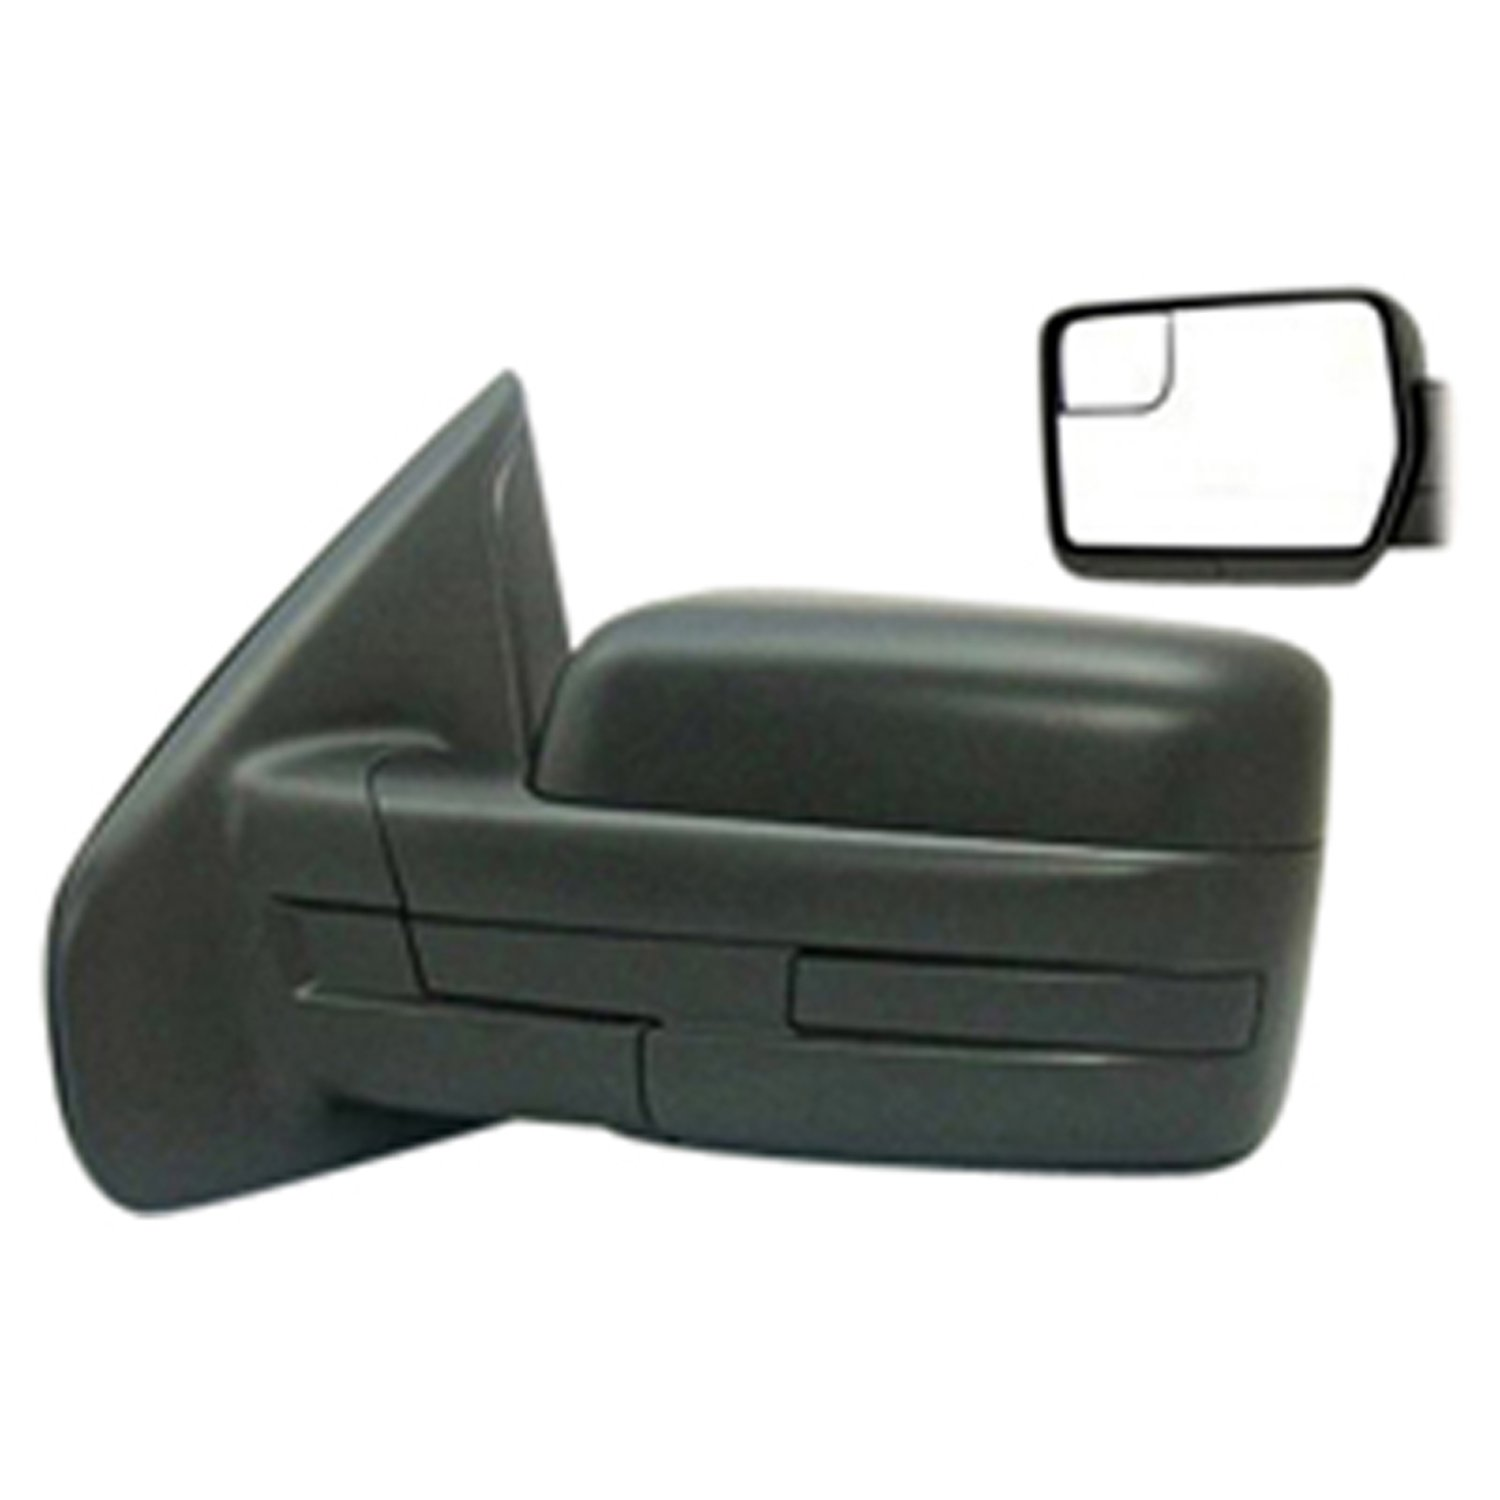 Partslink FO1320408 Multiple Manufacturers OE Replacement Door Mirror Ford Pickup Ford F150 SVT Raptor 2011-2014